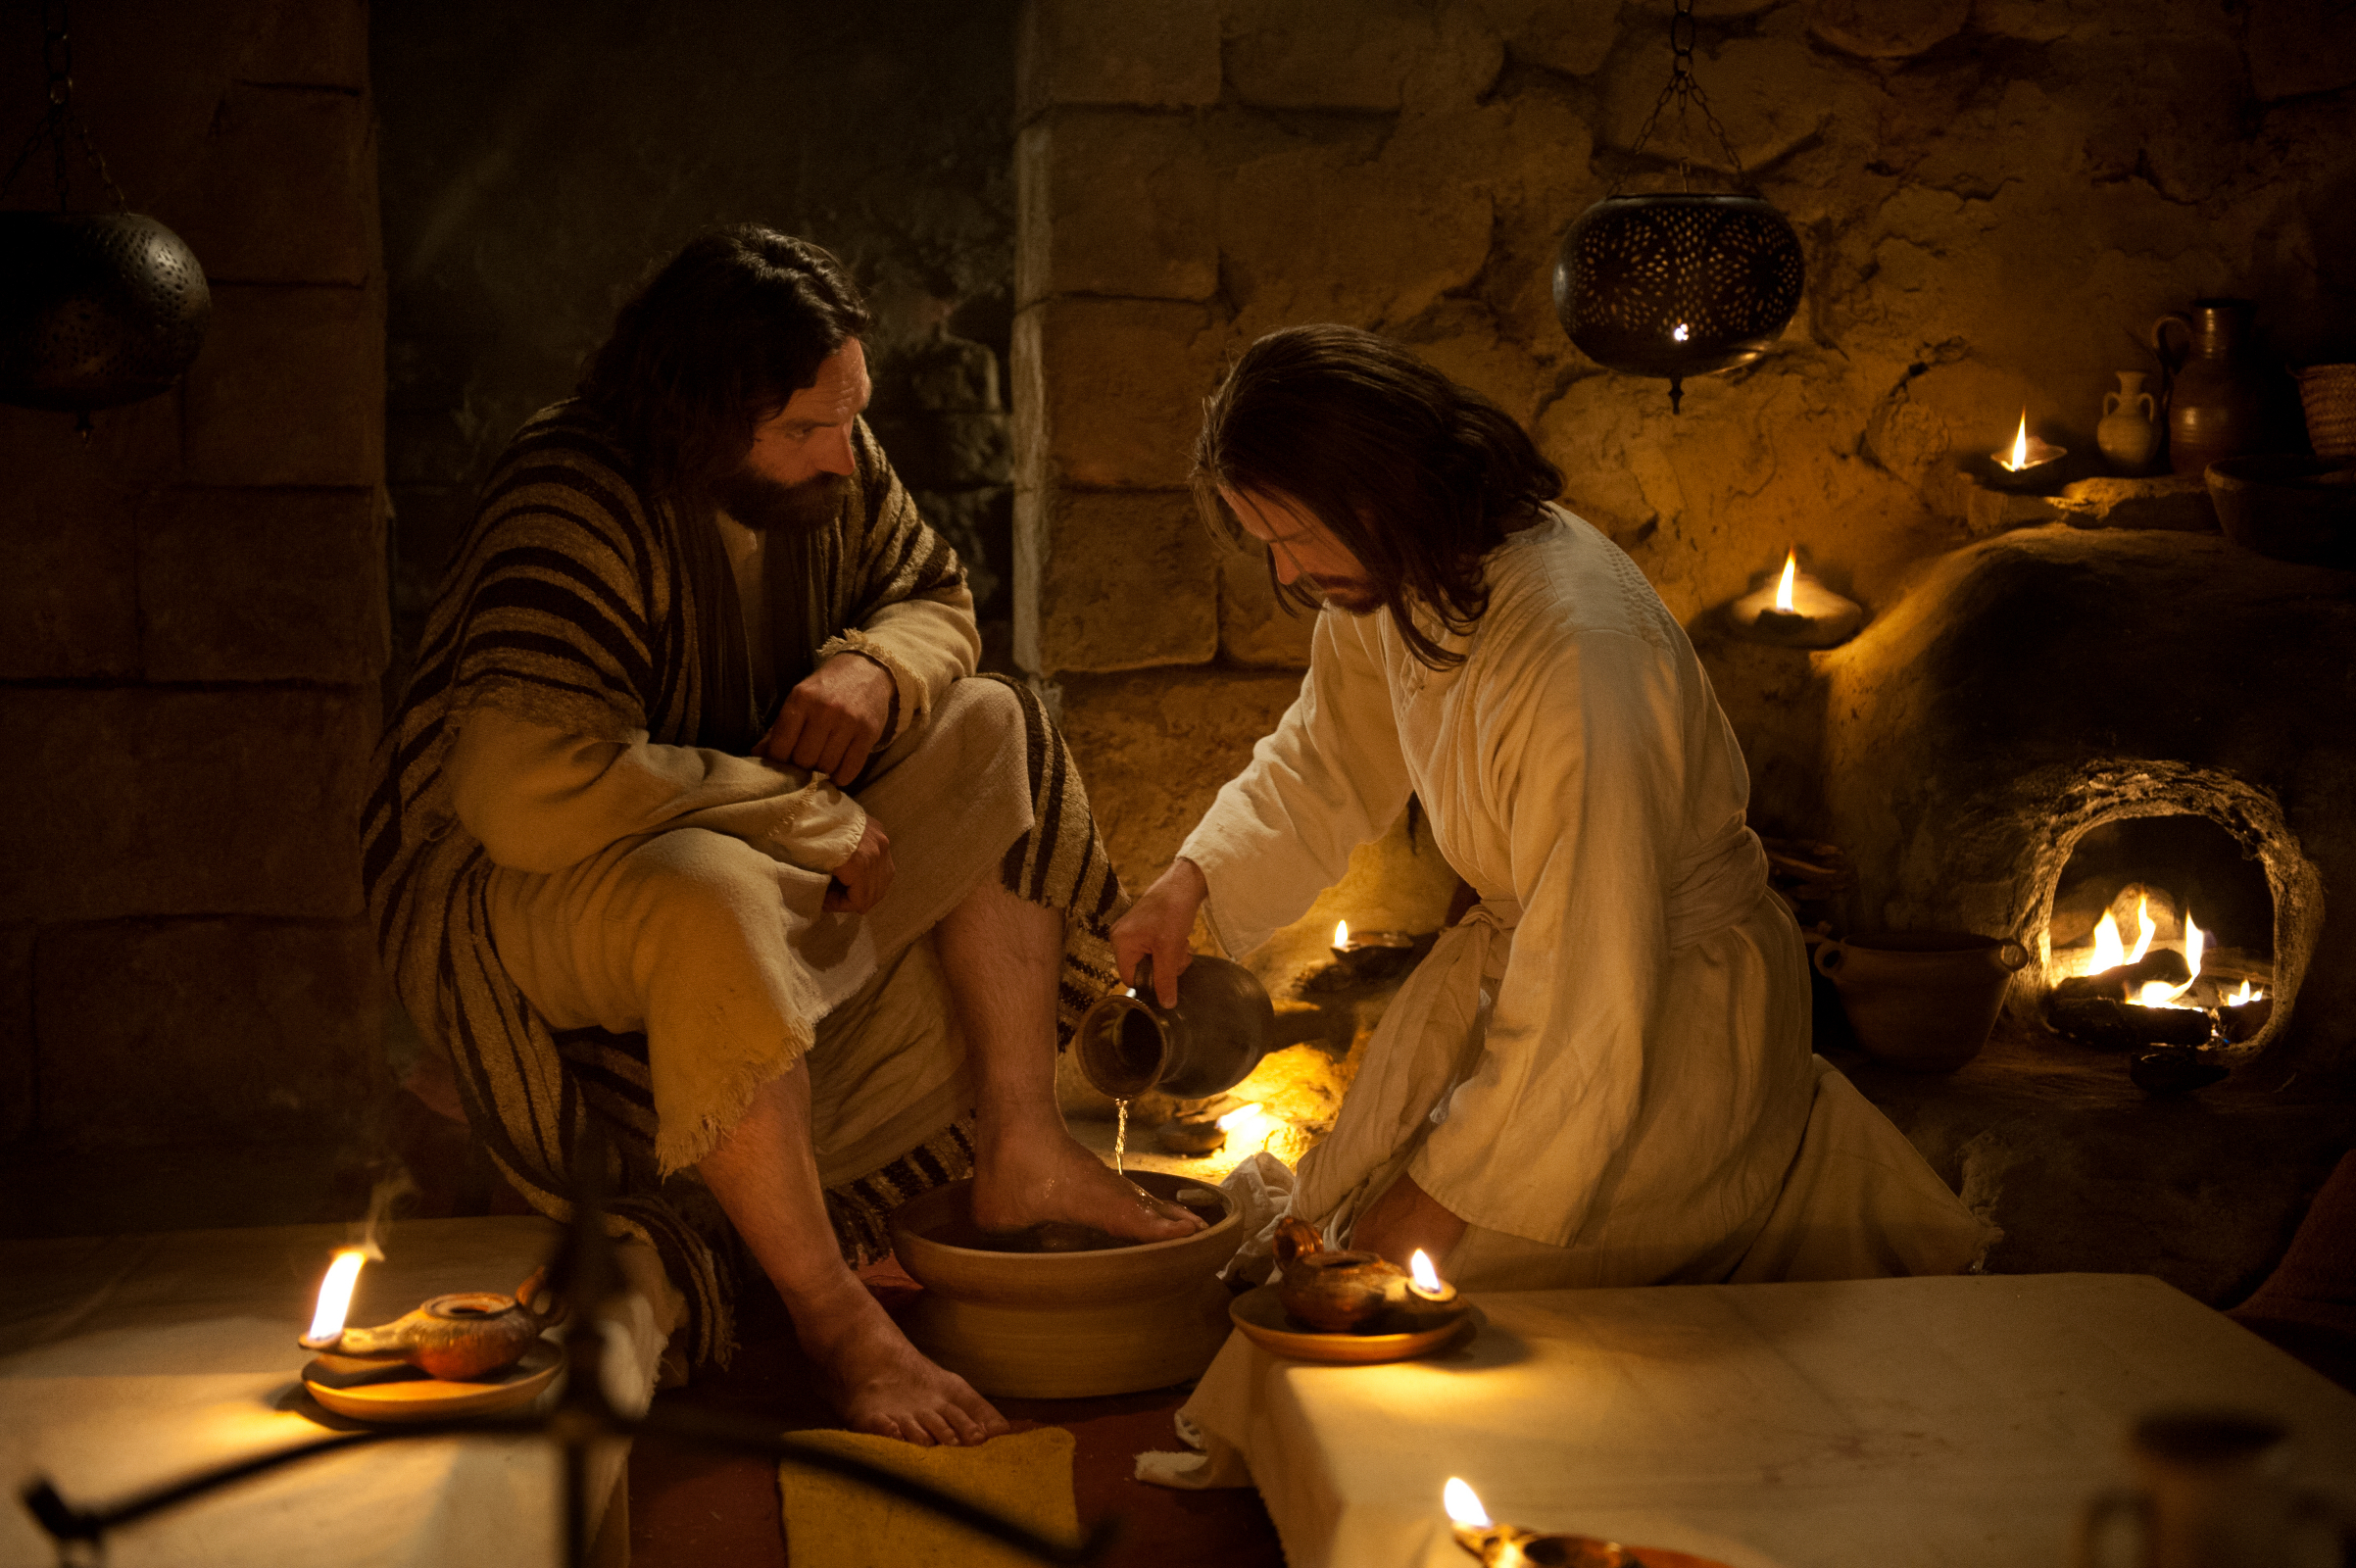 Jesus washes Peter's feet while at the Last Supper with the Apostles in this image from the Bible Videos series.